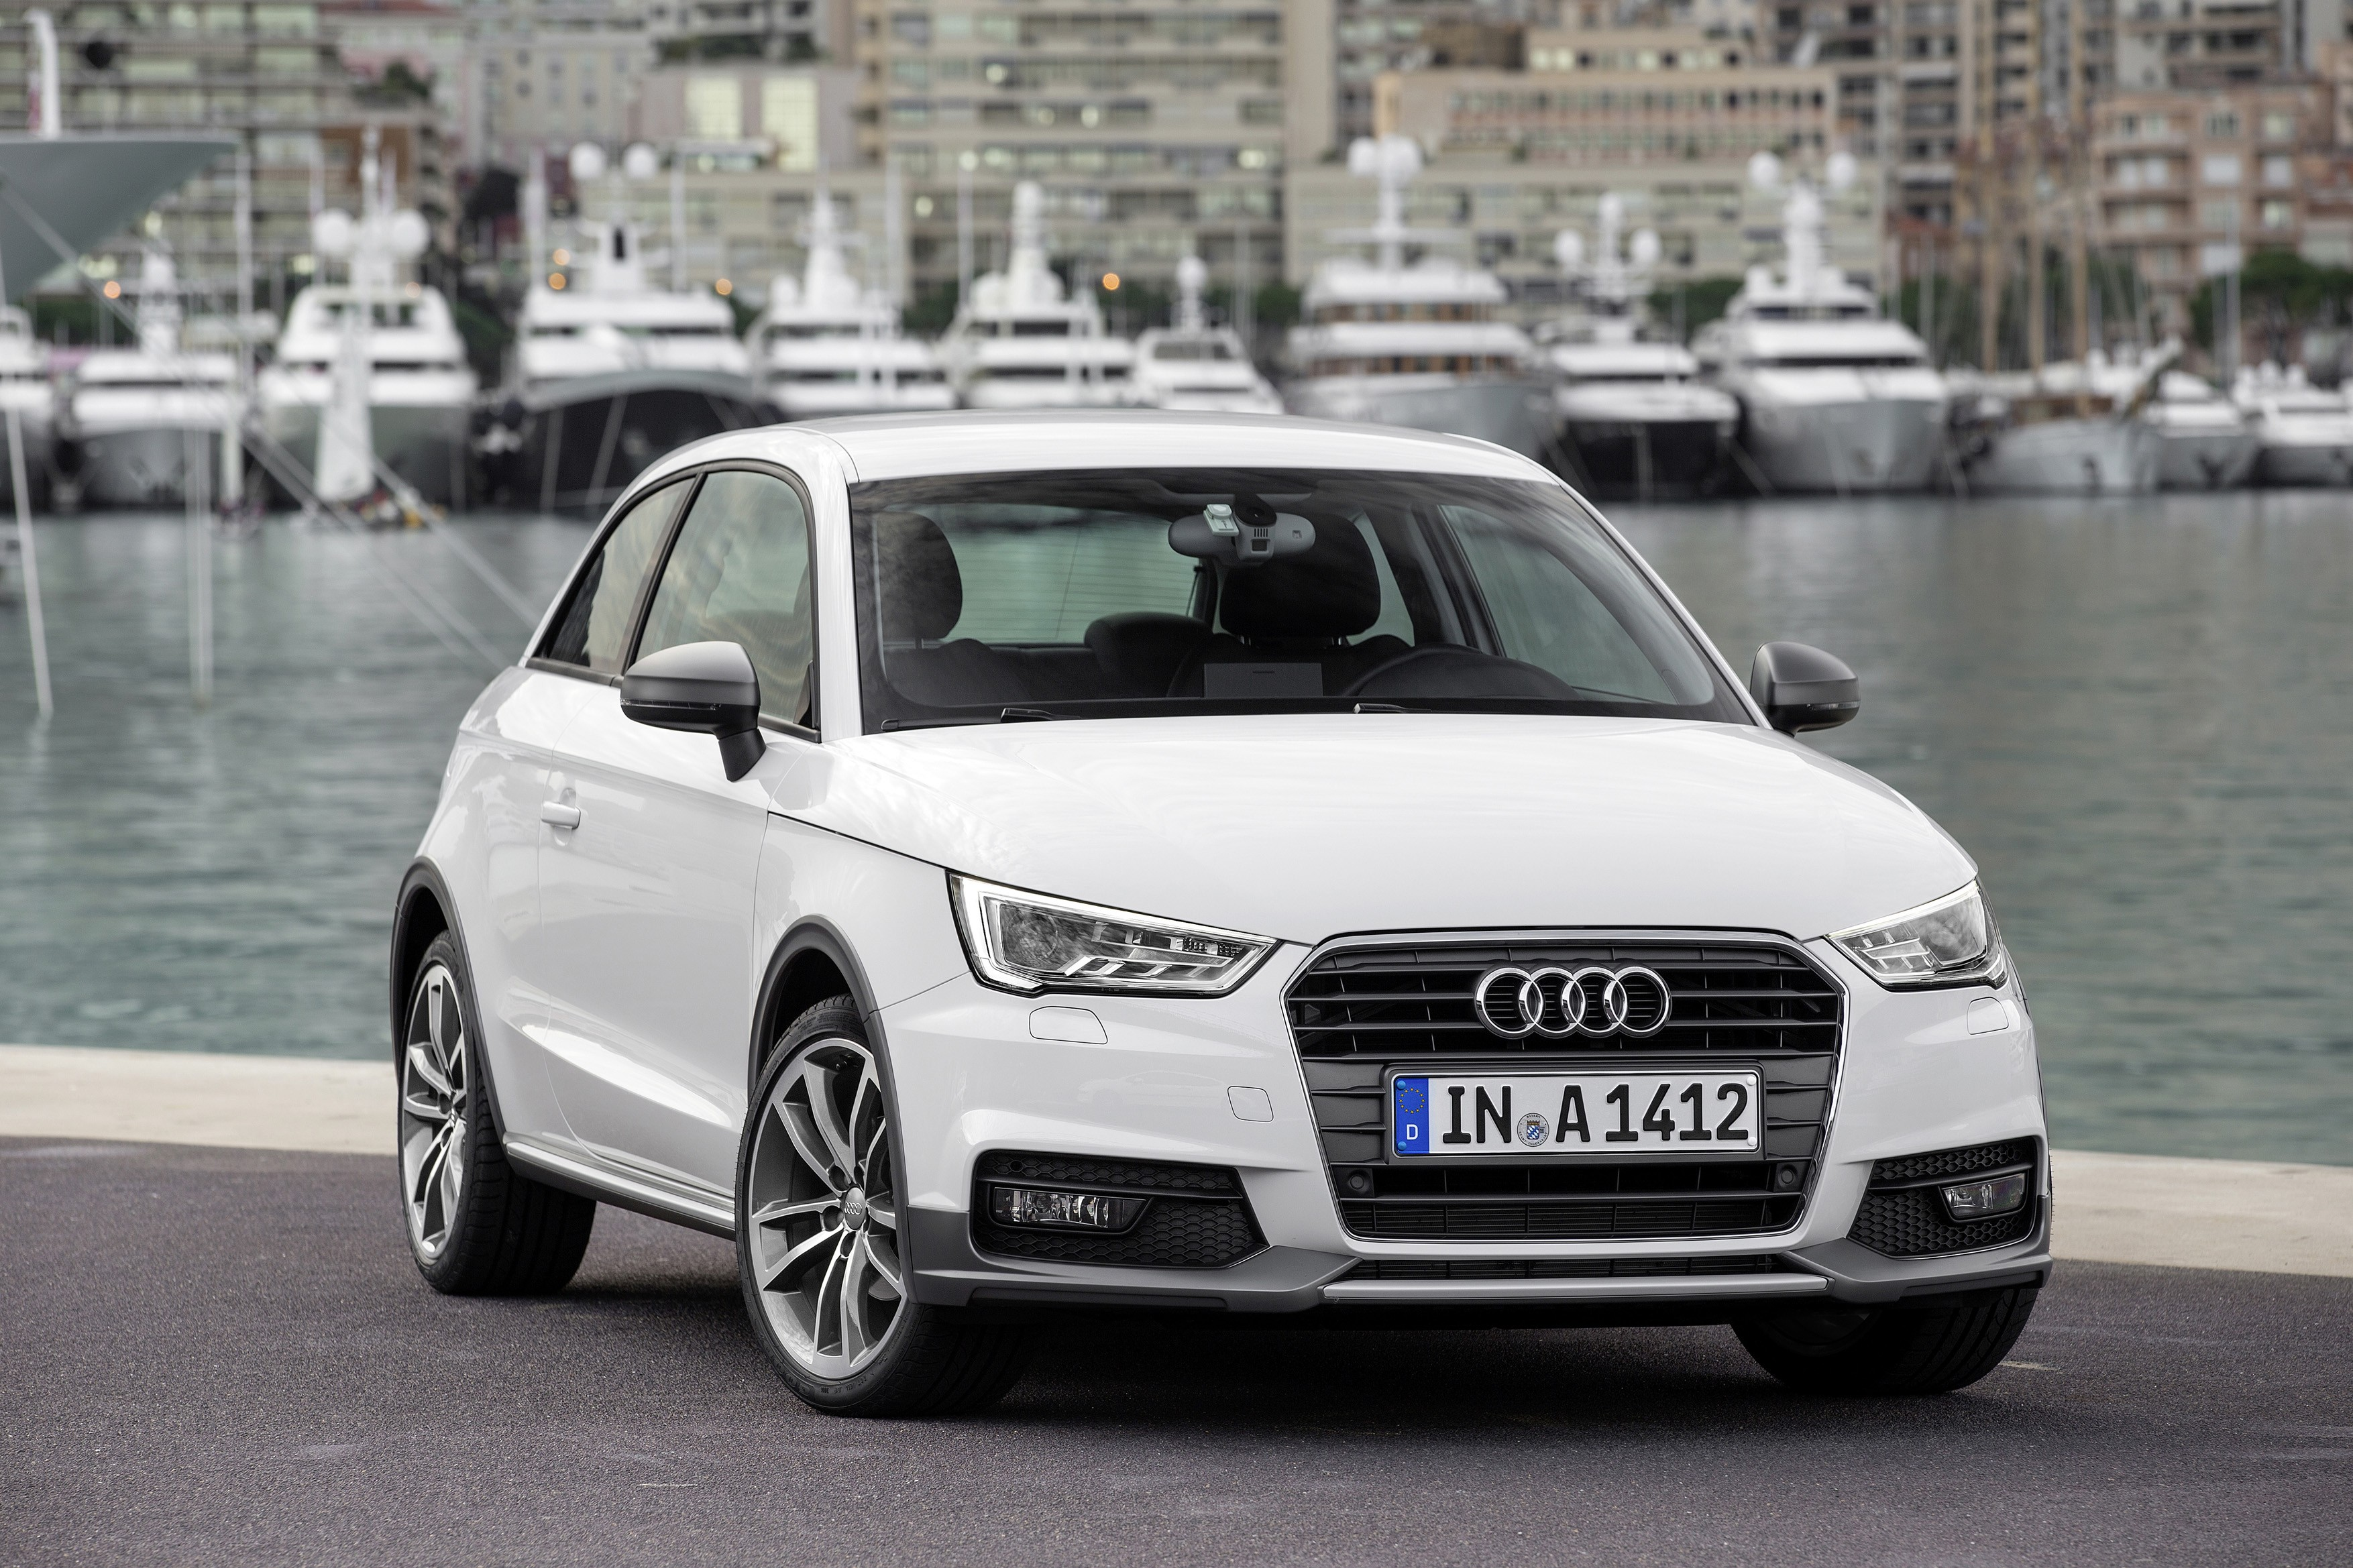 Audi all cars price list in india 2016 11